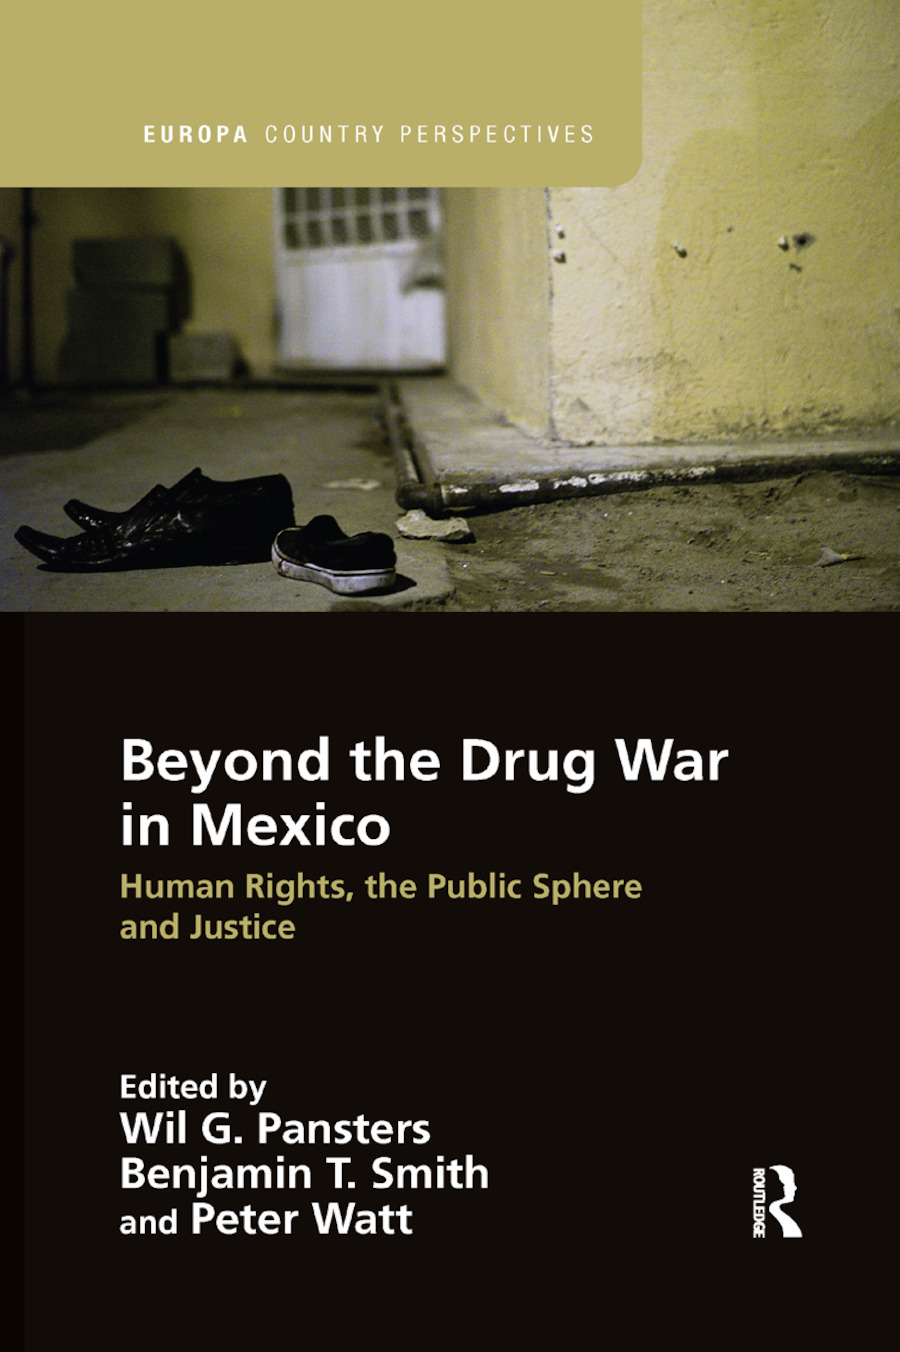 Beyond the Drug War in Mexico